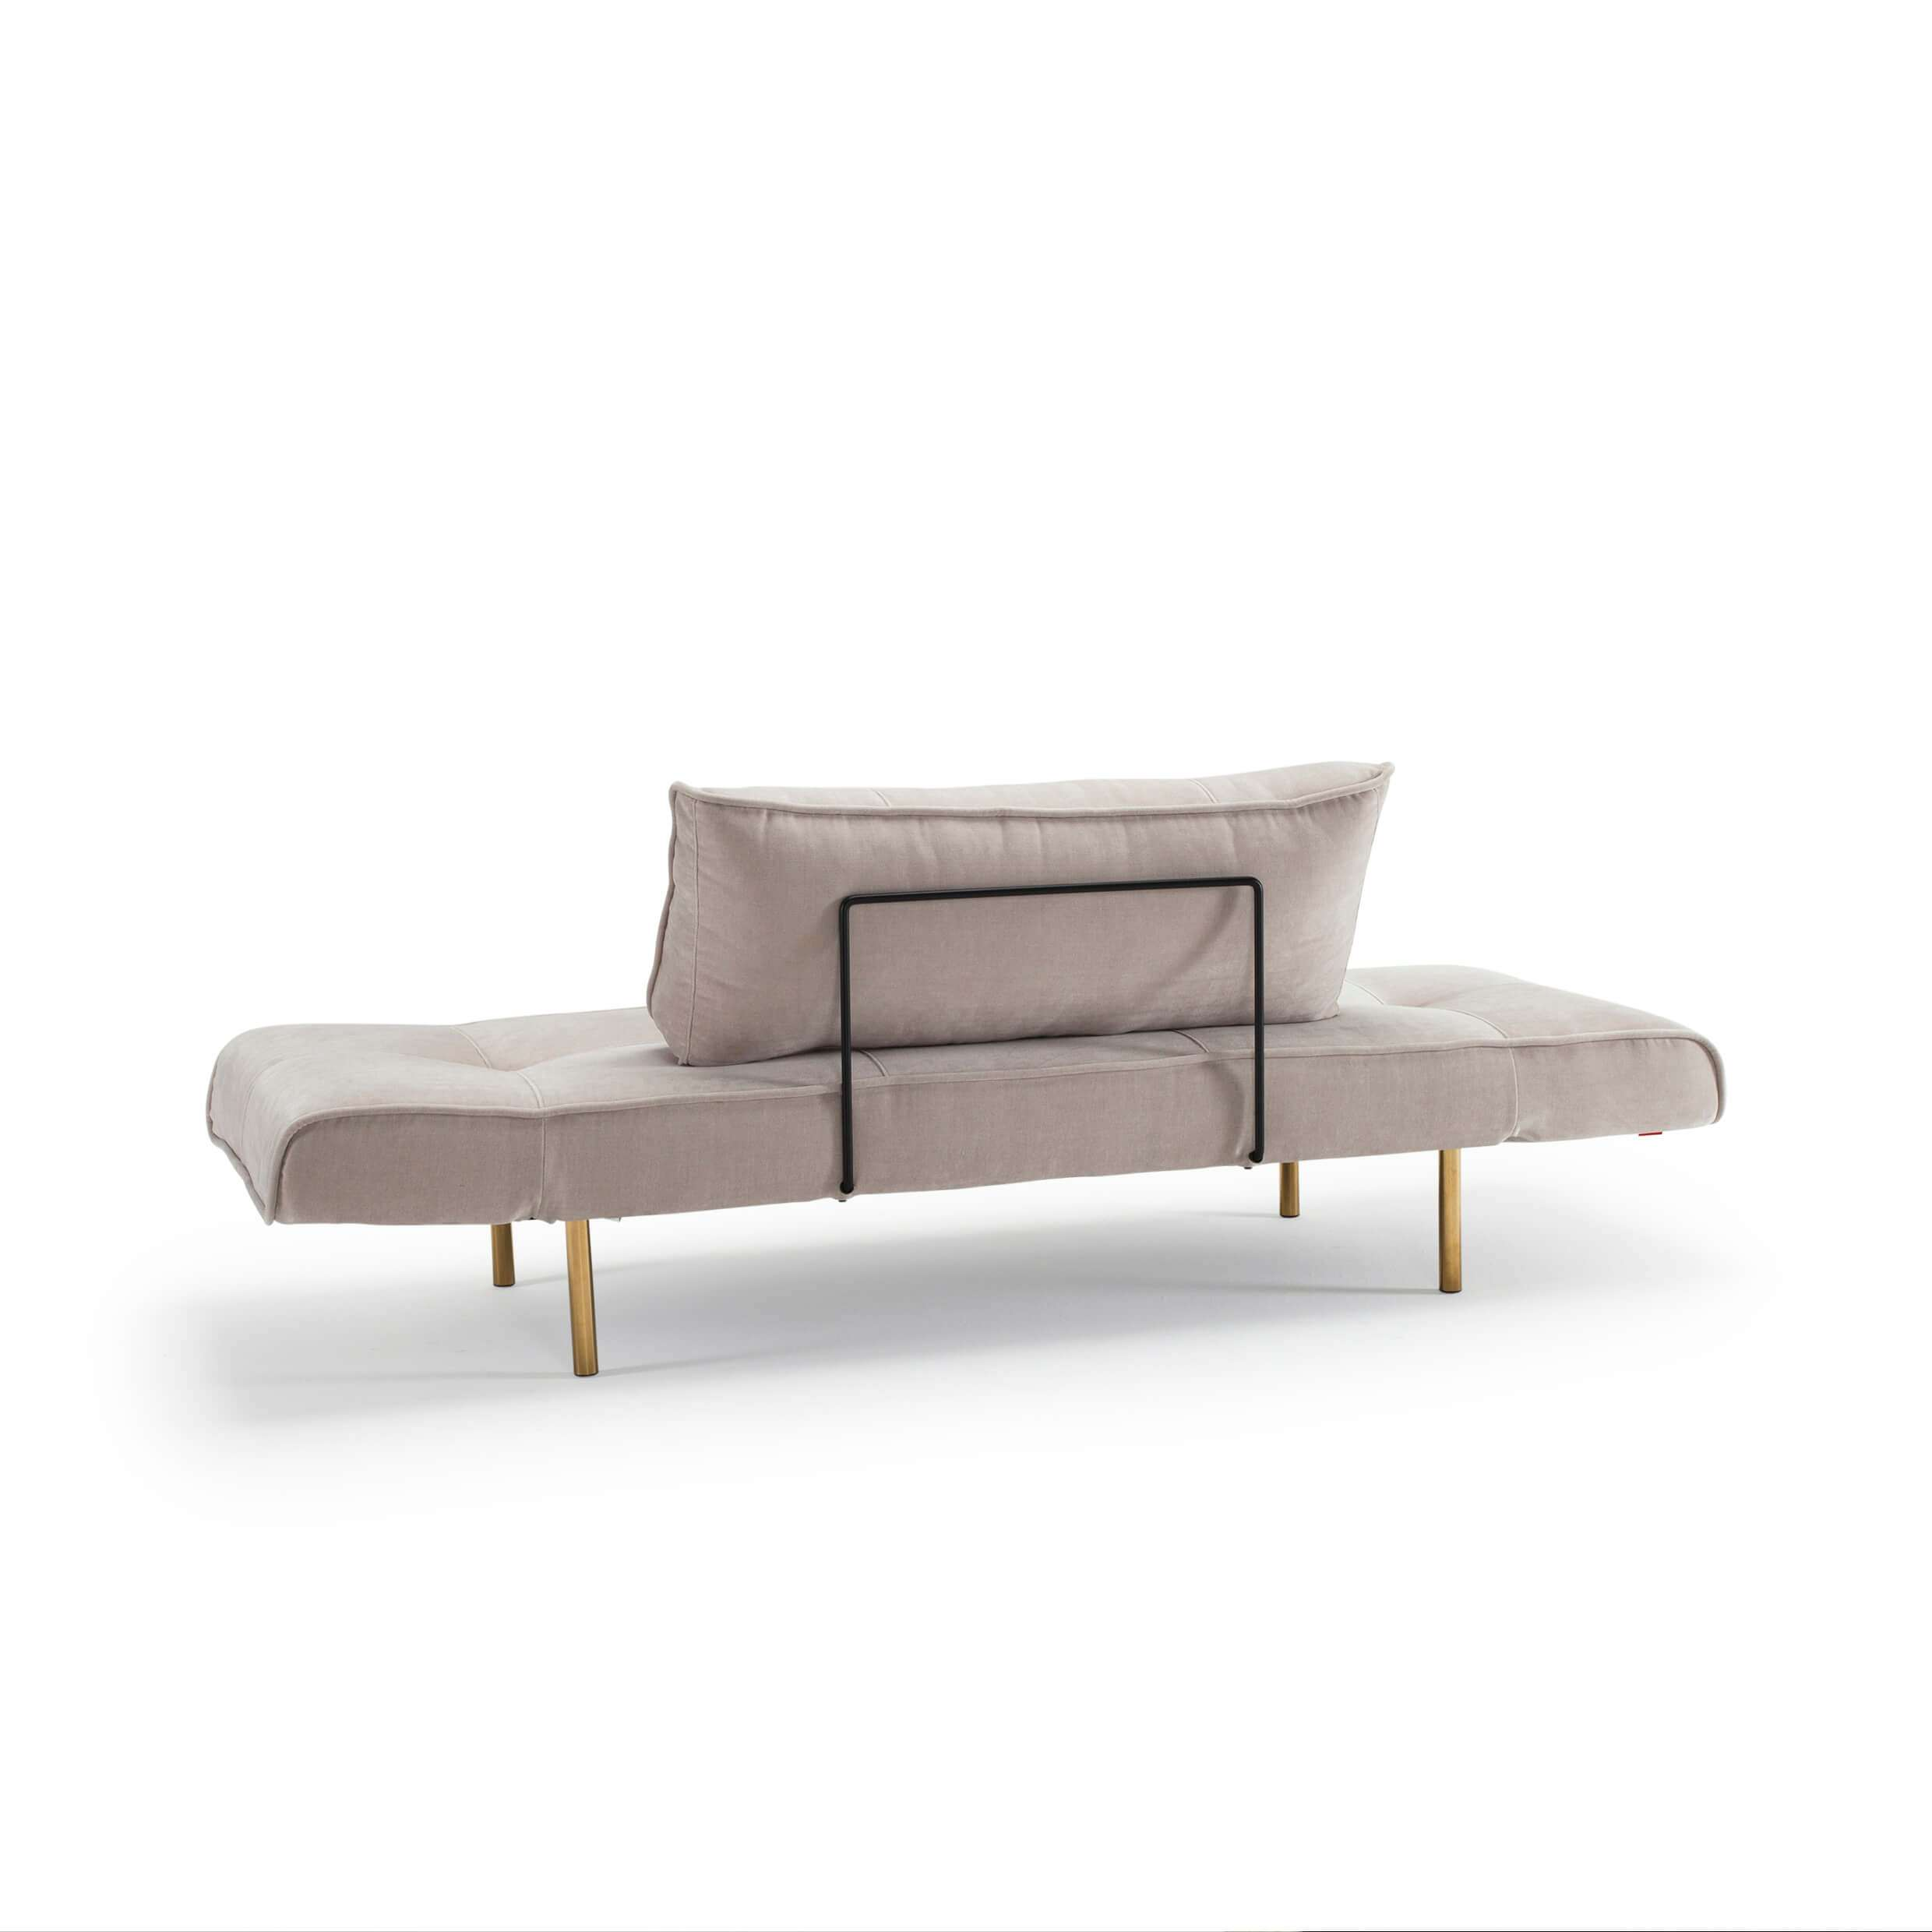 Daybed sofa rear view